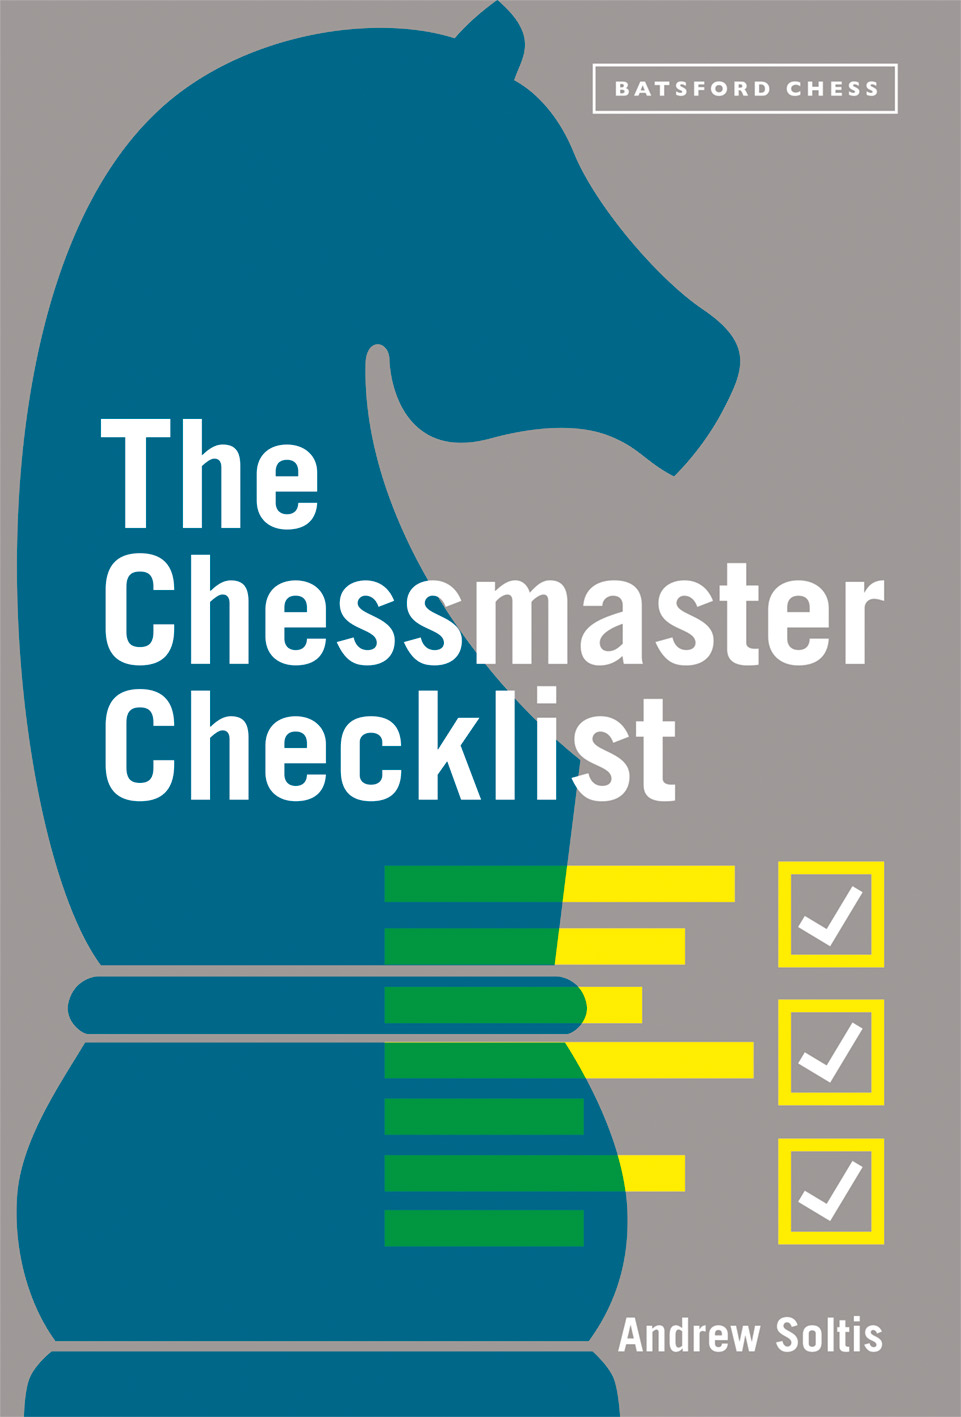 The Chessmaster Checklist